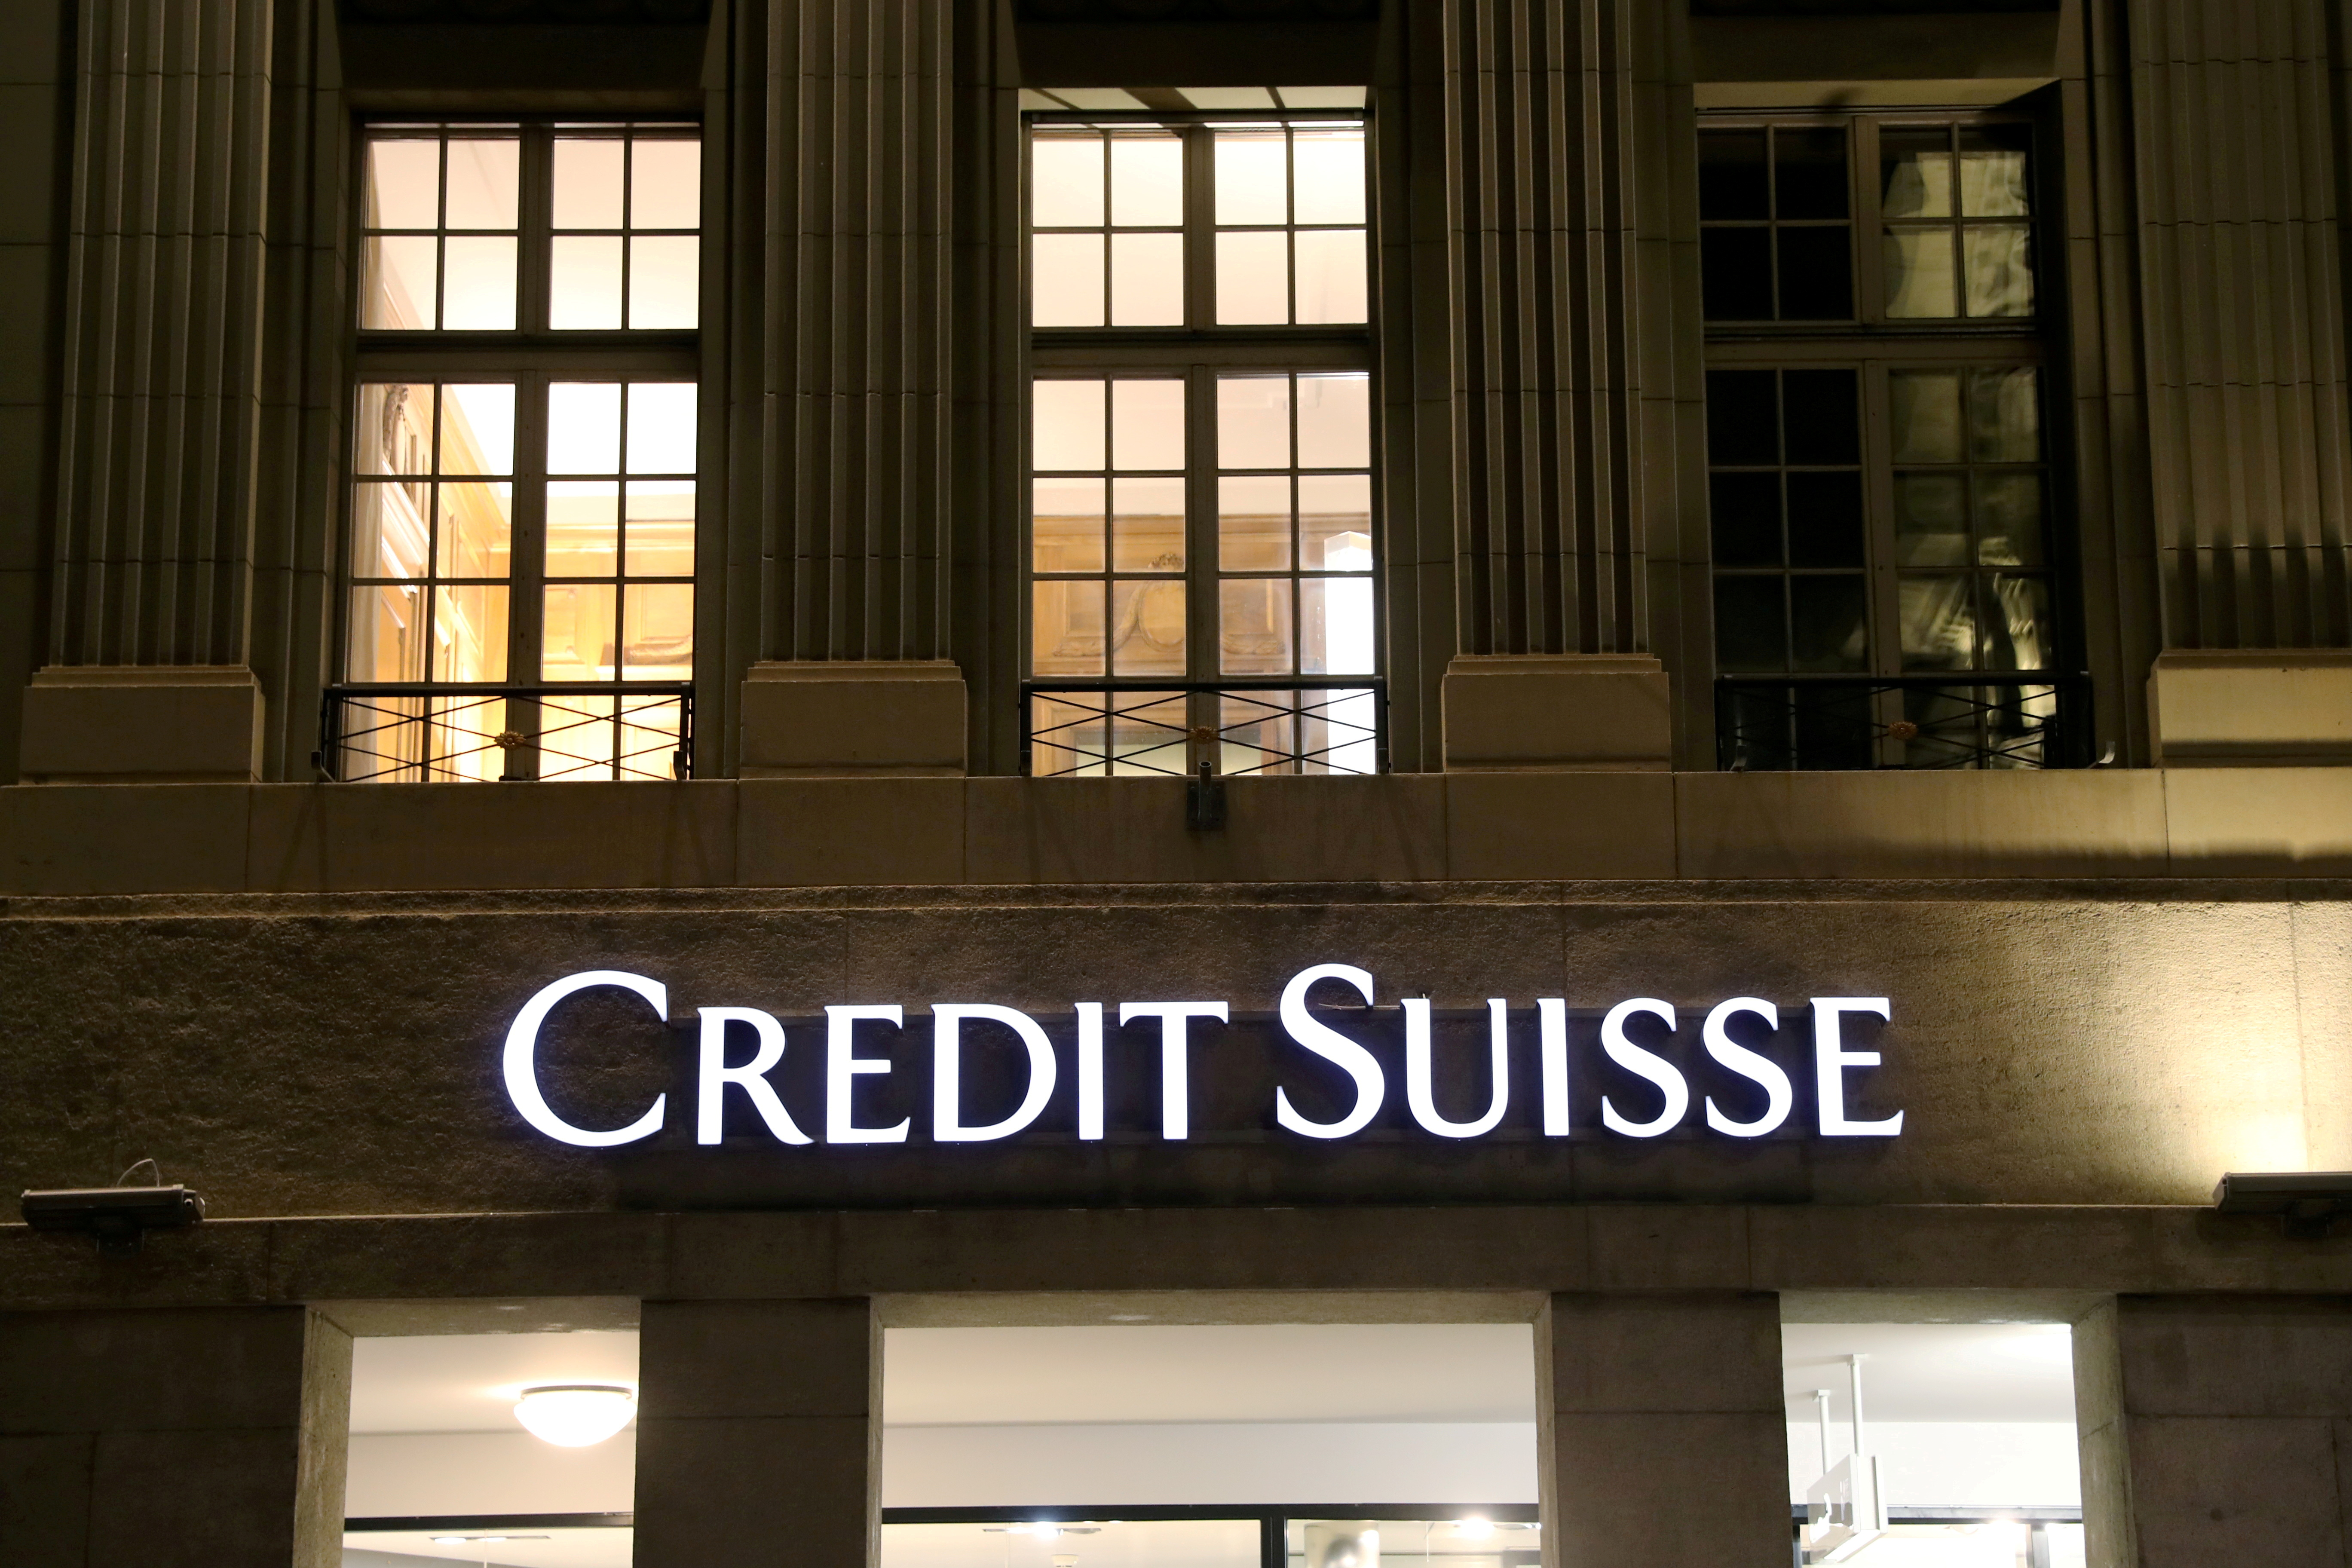 The logo of Swiss bank Credit Suisse is seen at a branch office in Bern, Switzerland October 28, 2020. REUTERS/Arnd Wiegmann